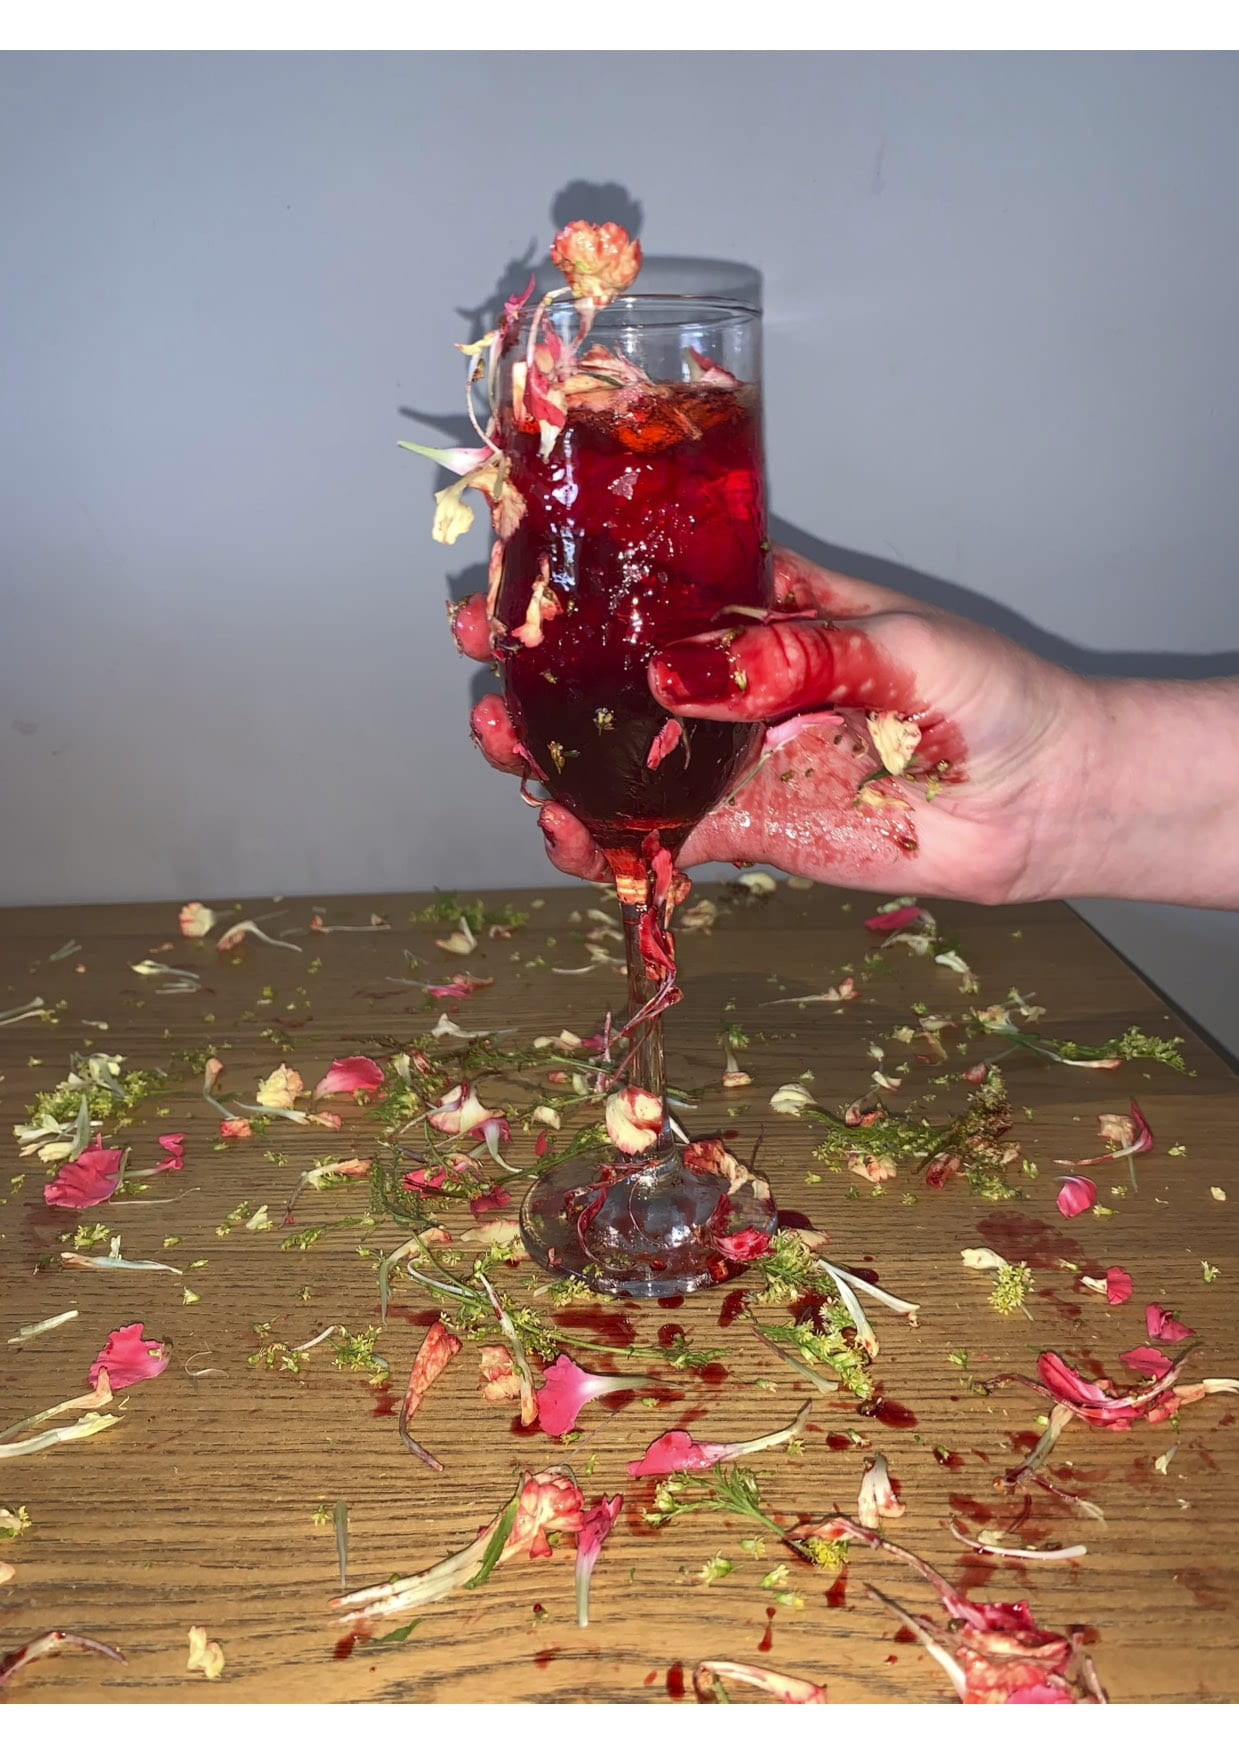 Hand holding a glass full of flowers and red liquid.